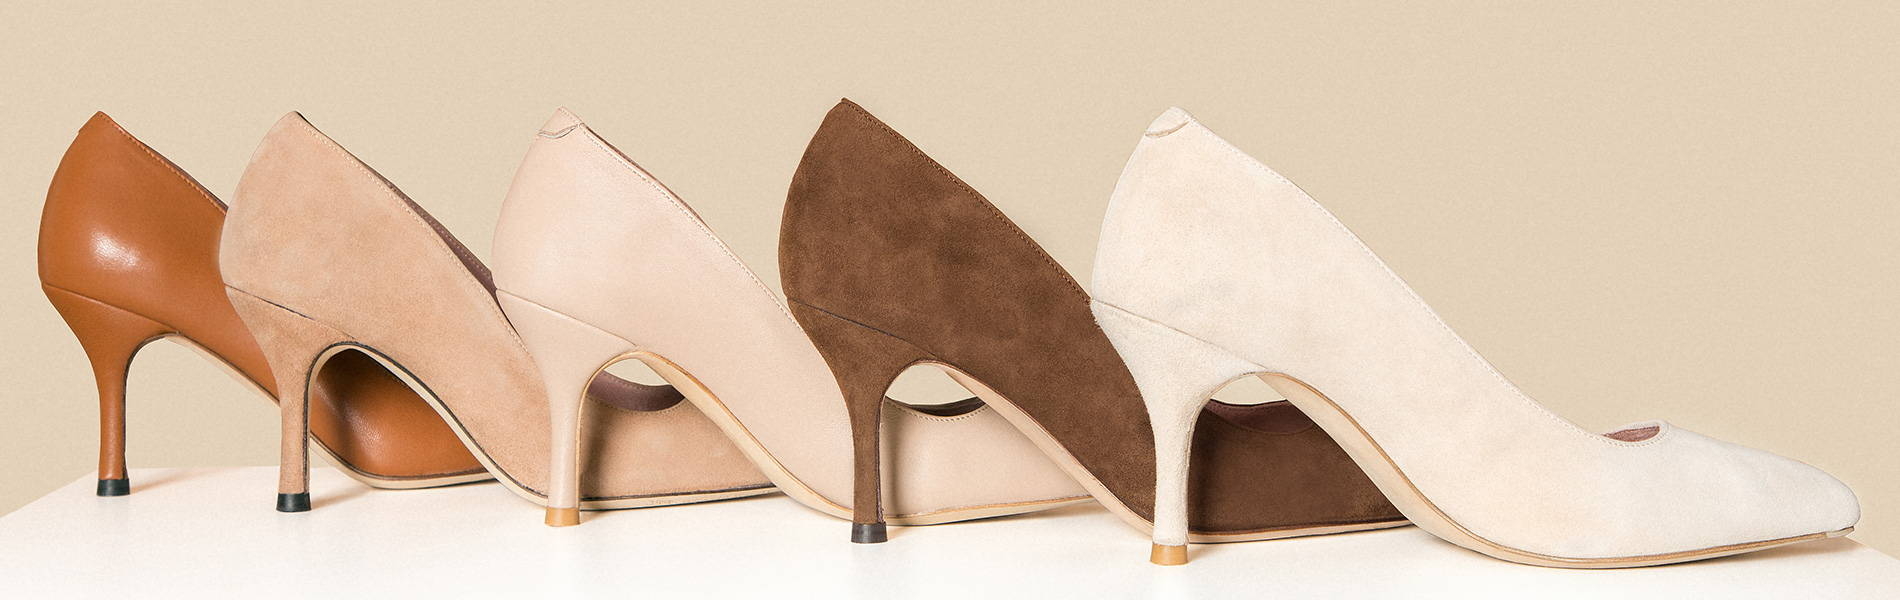 Most Comfortable Heels | Ally Shoes